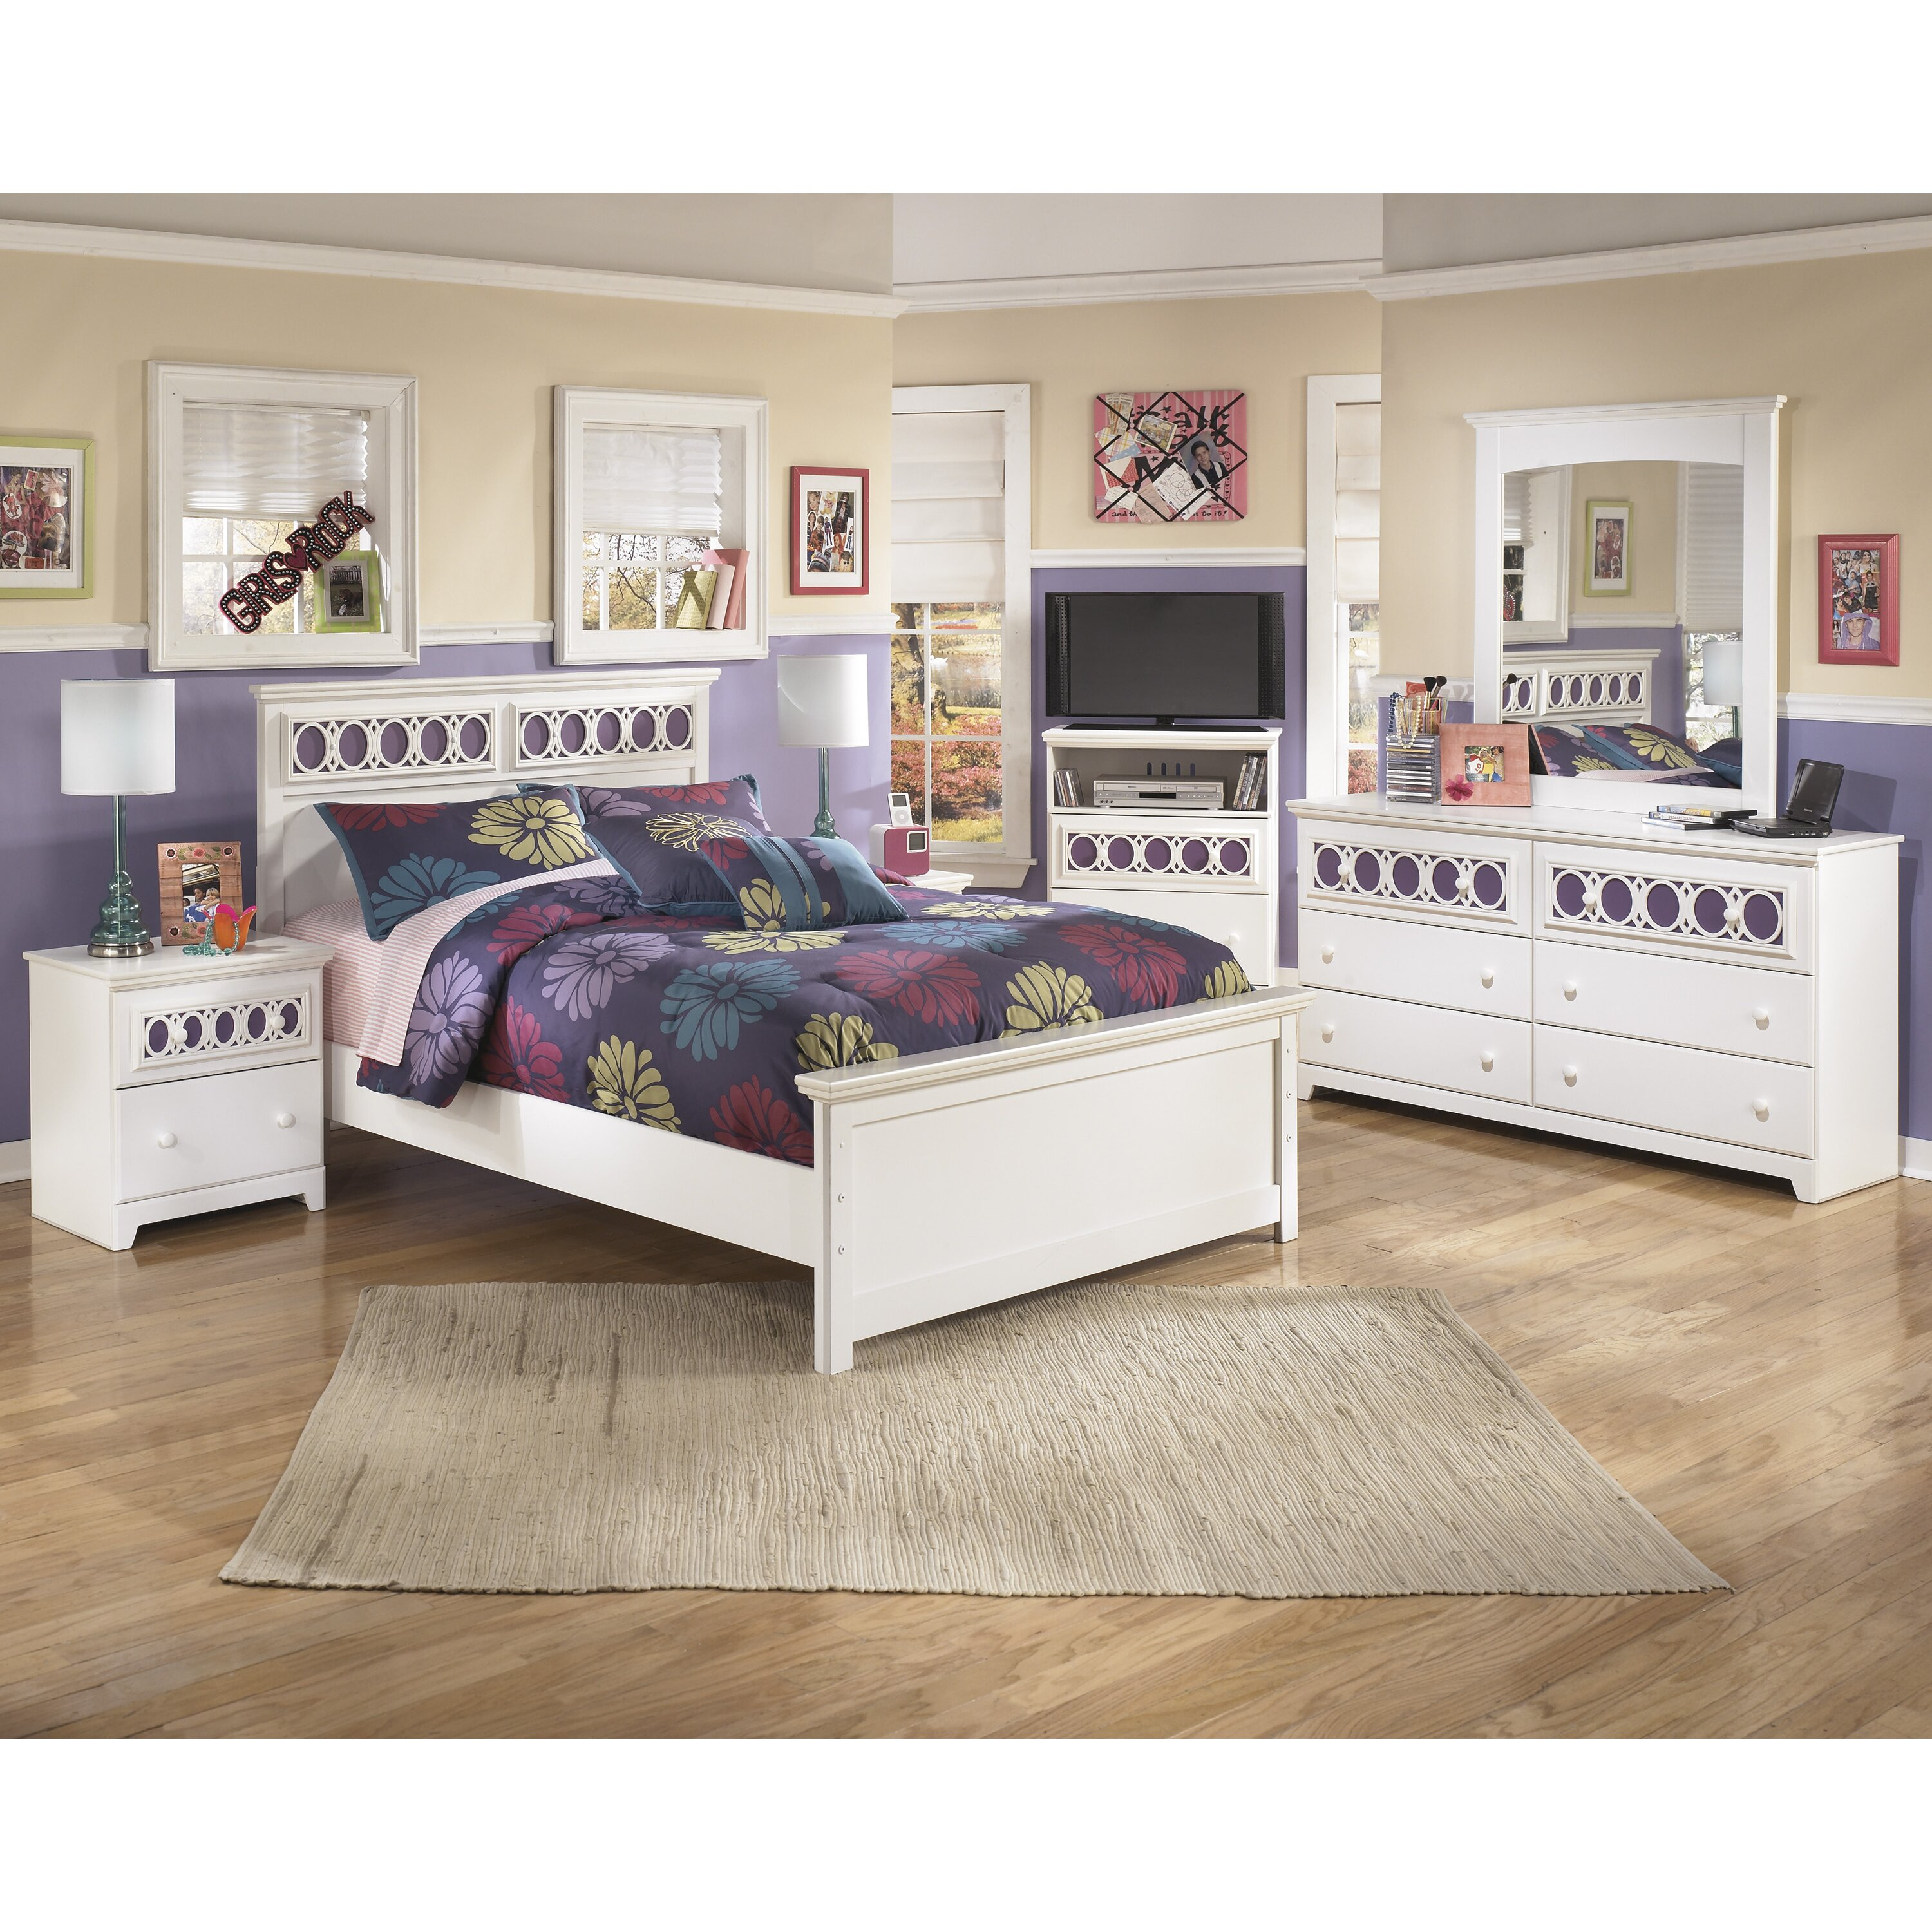 Ashley Home Furniture Bedroom Sets: Signature Design By Ashley Zayley Panel Customizable